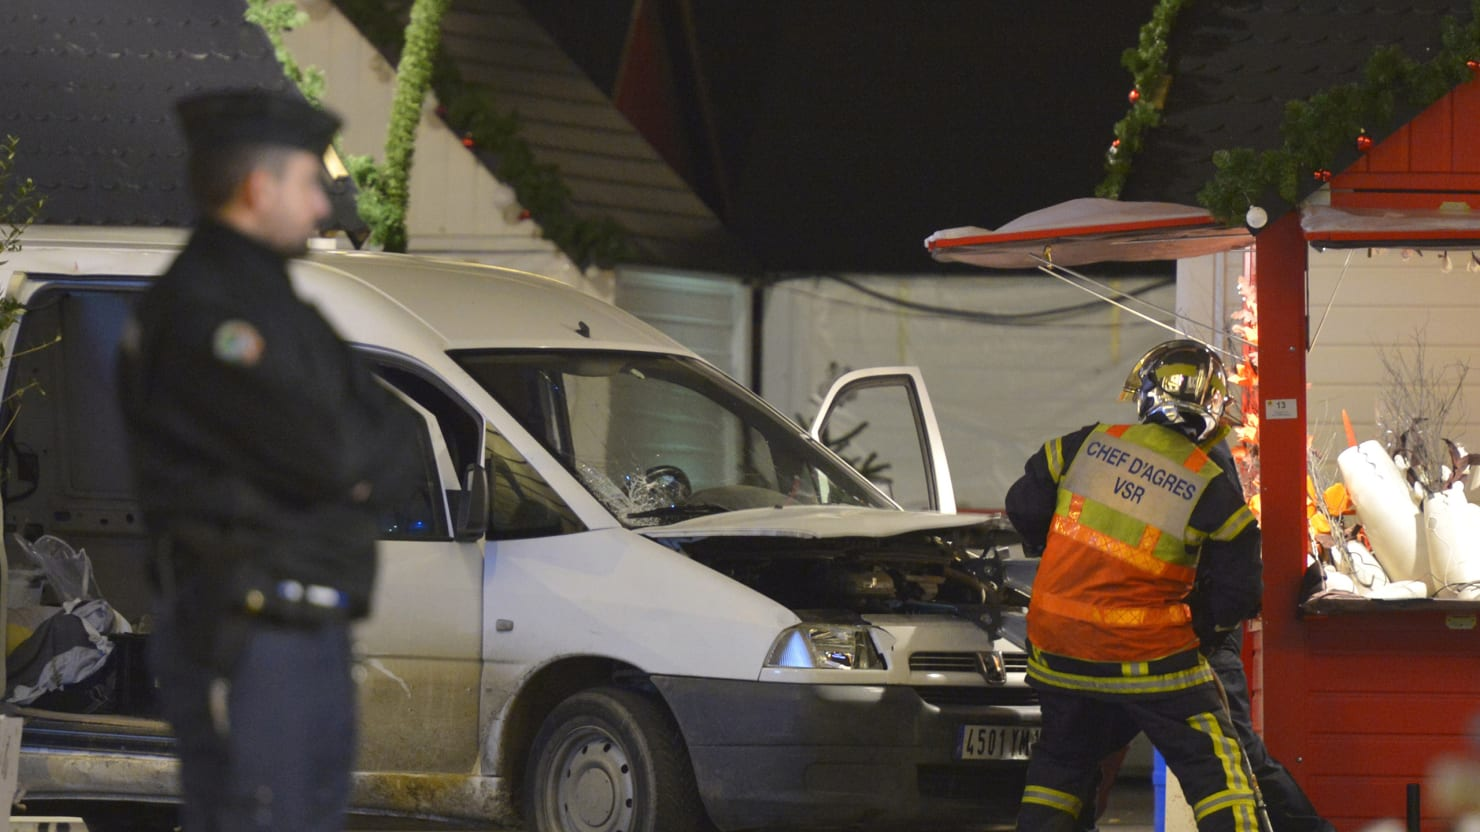 France's Wave of Crazy-Terror Christmas Attacks